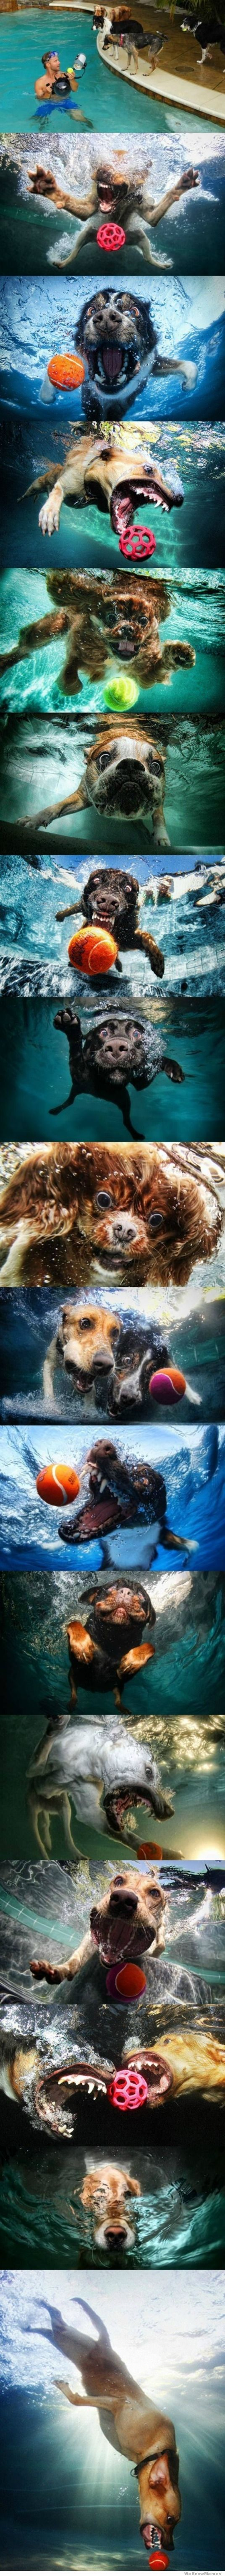 dogs-underwater   omg so awesome